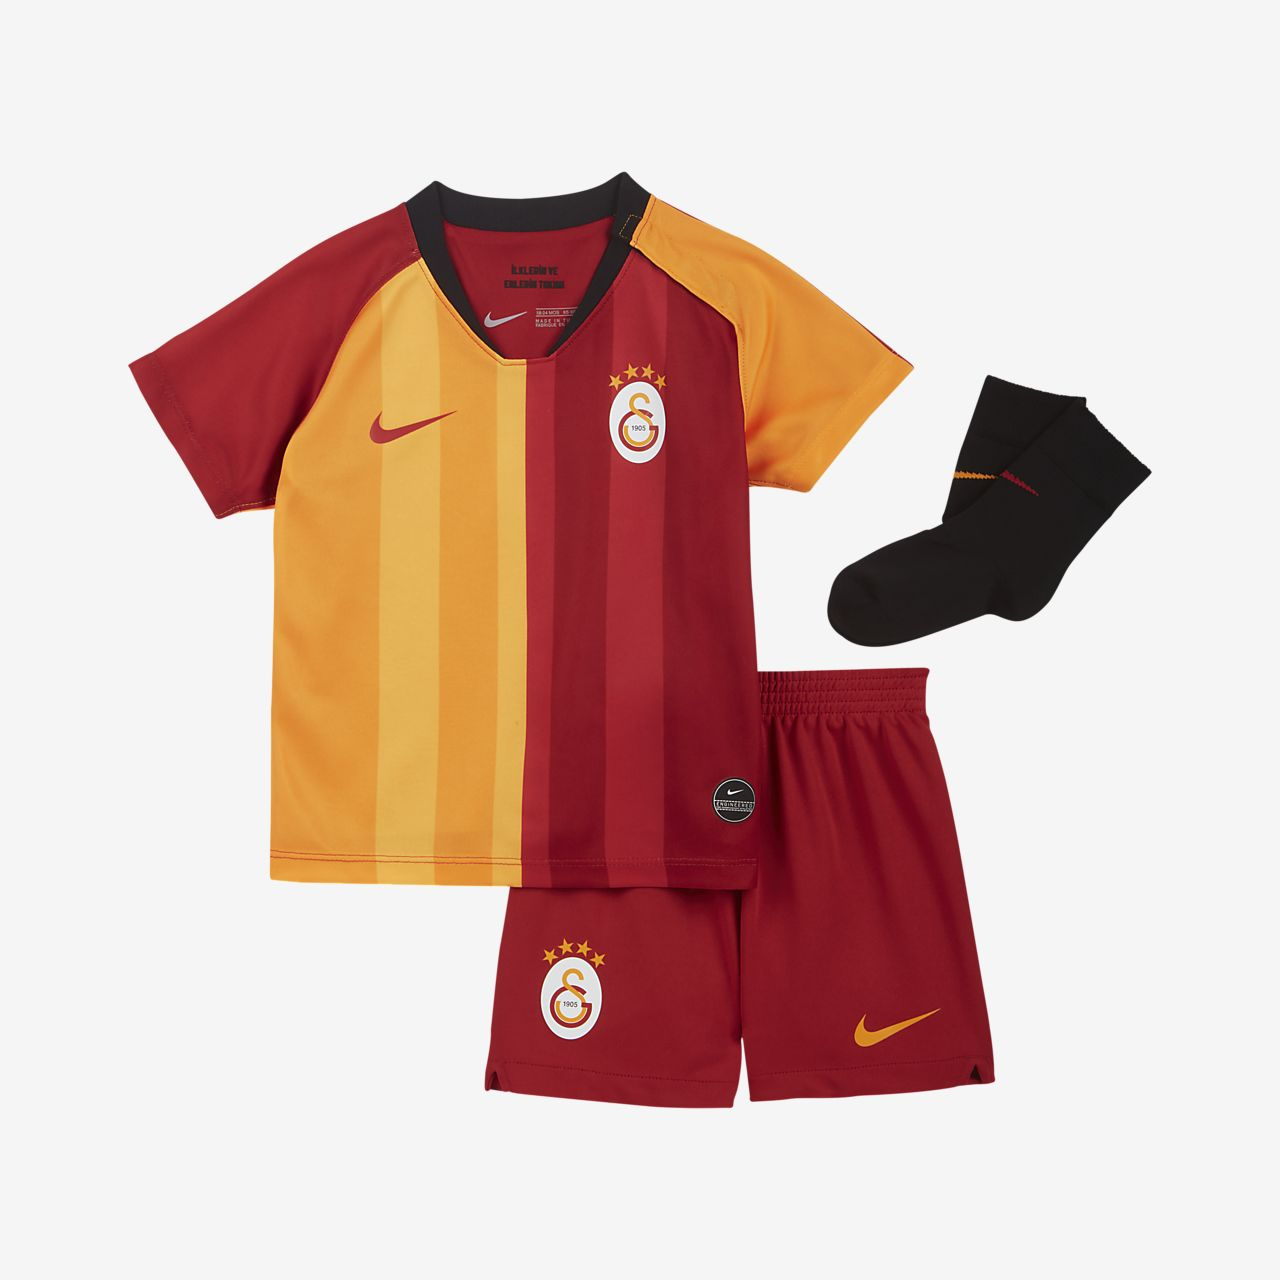 Galatasaray 2019/20 Home Baby and Toddler Football Kit